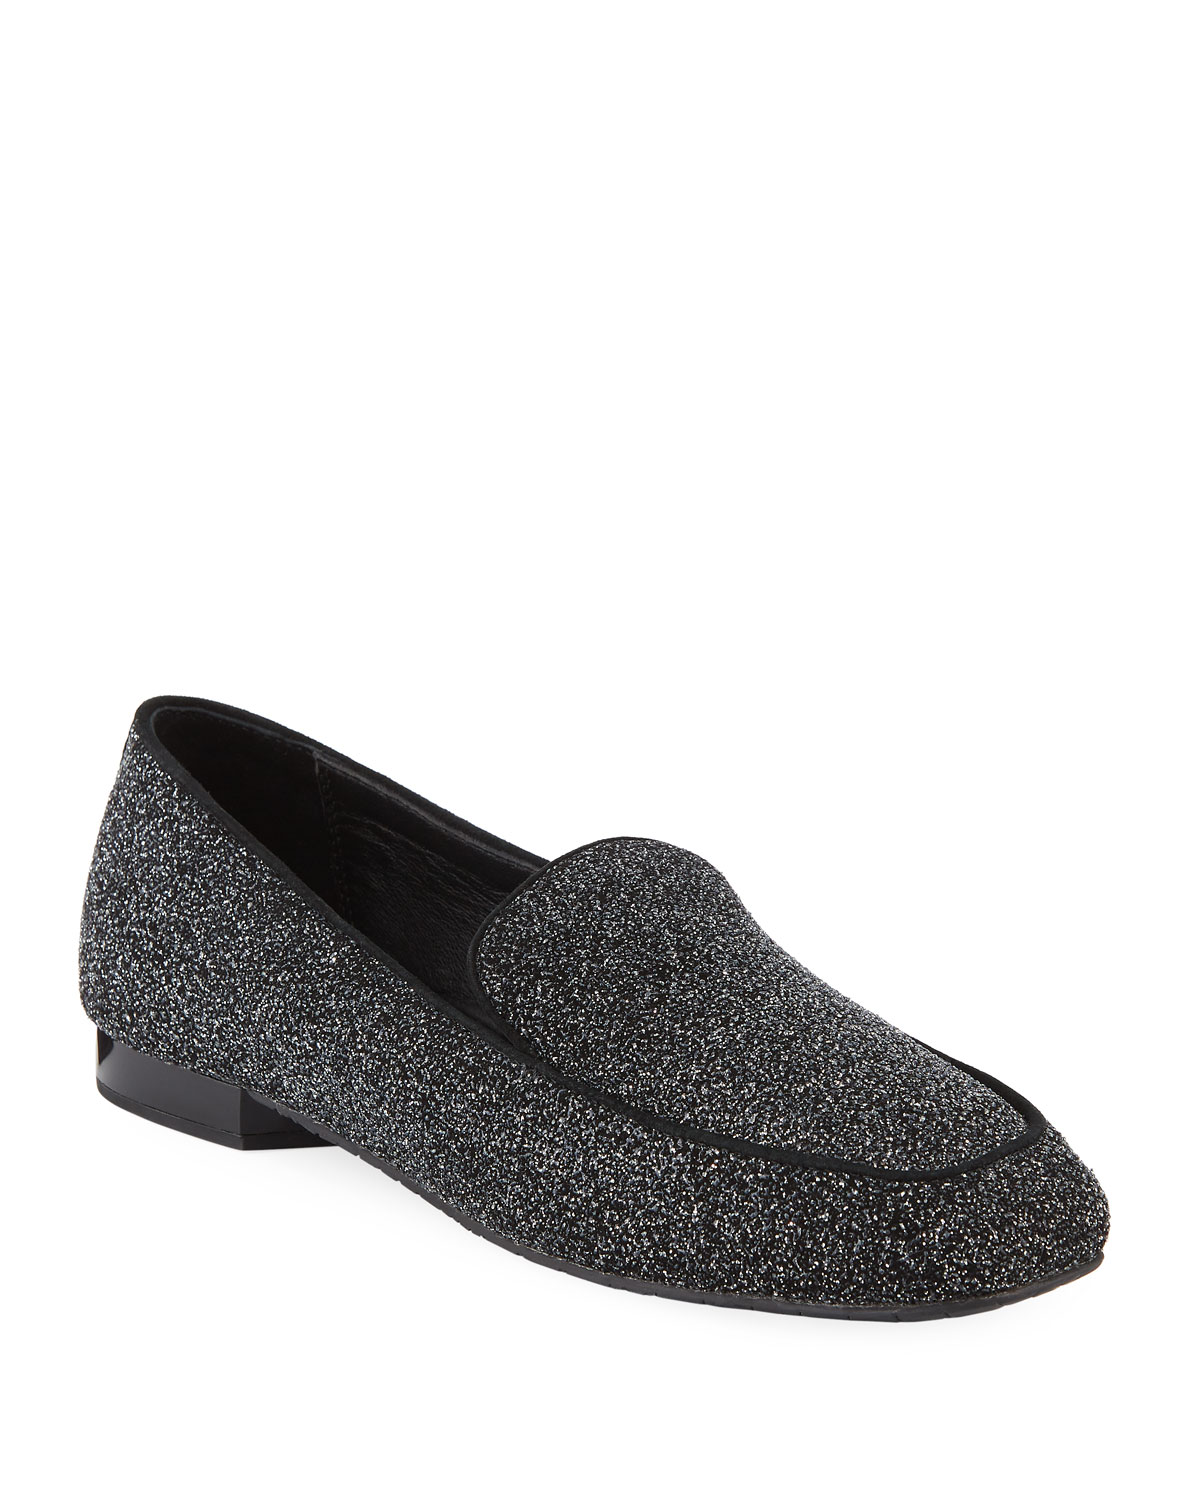 DONALD J PLINER Heddy Glittered Flat Loafers in Silver Glitter Suede